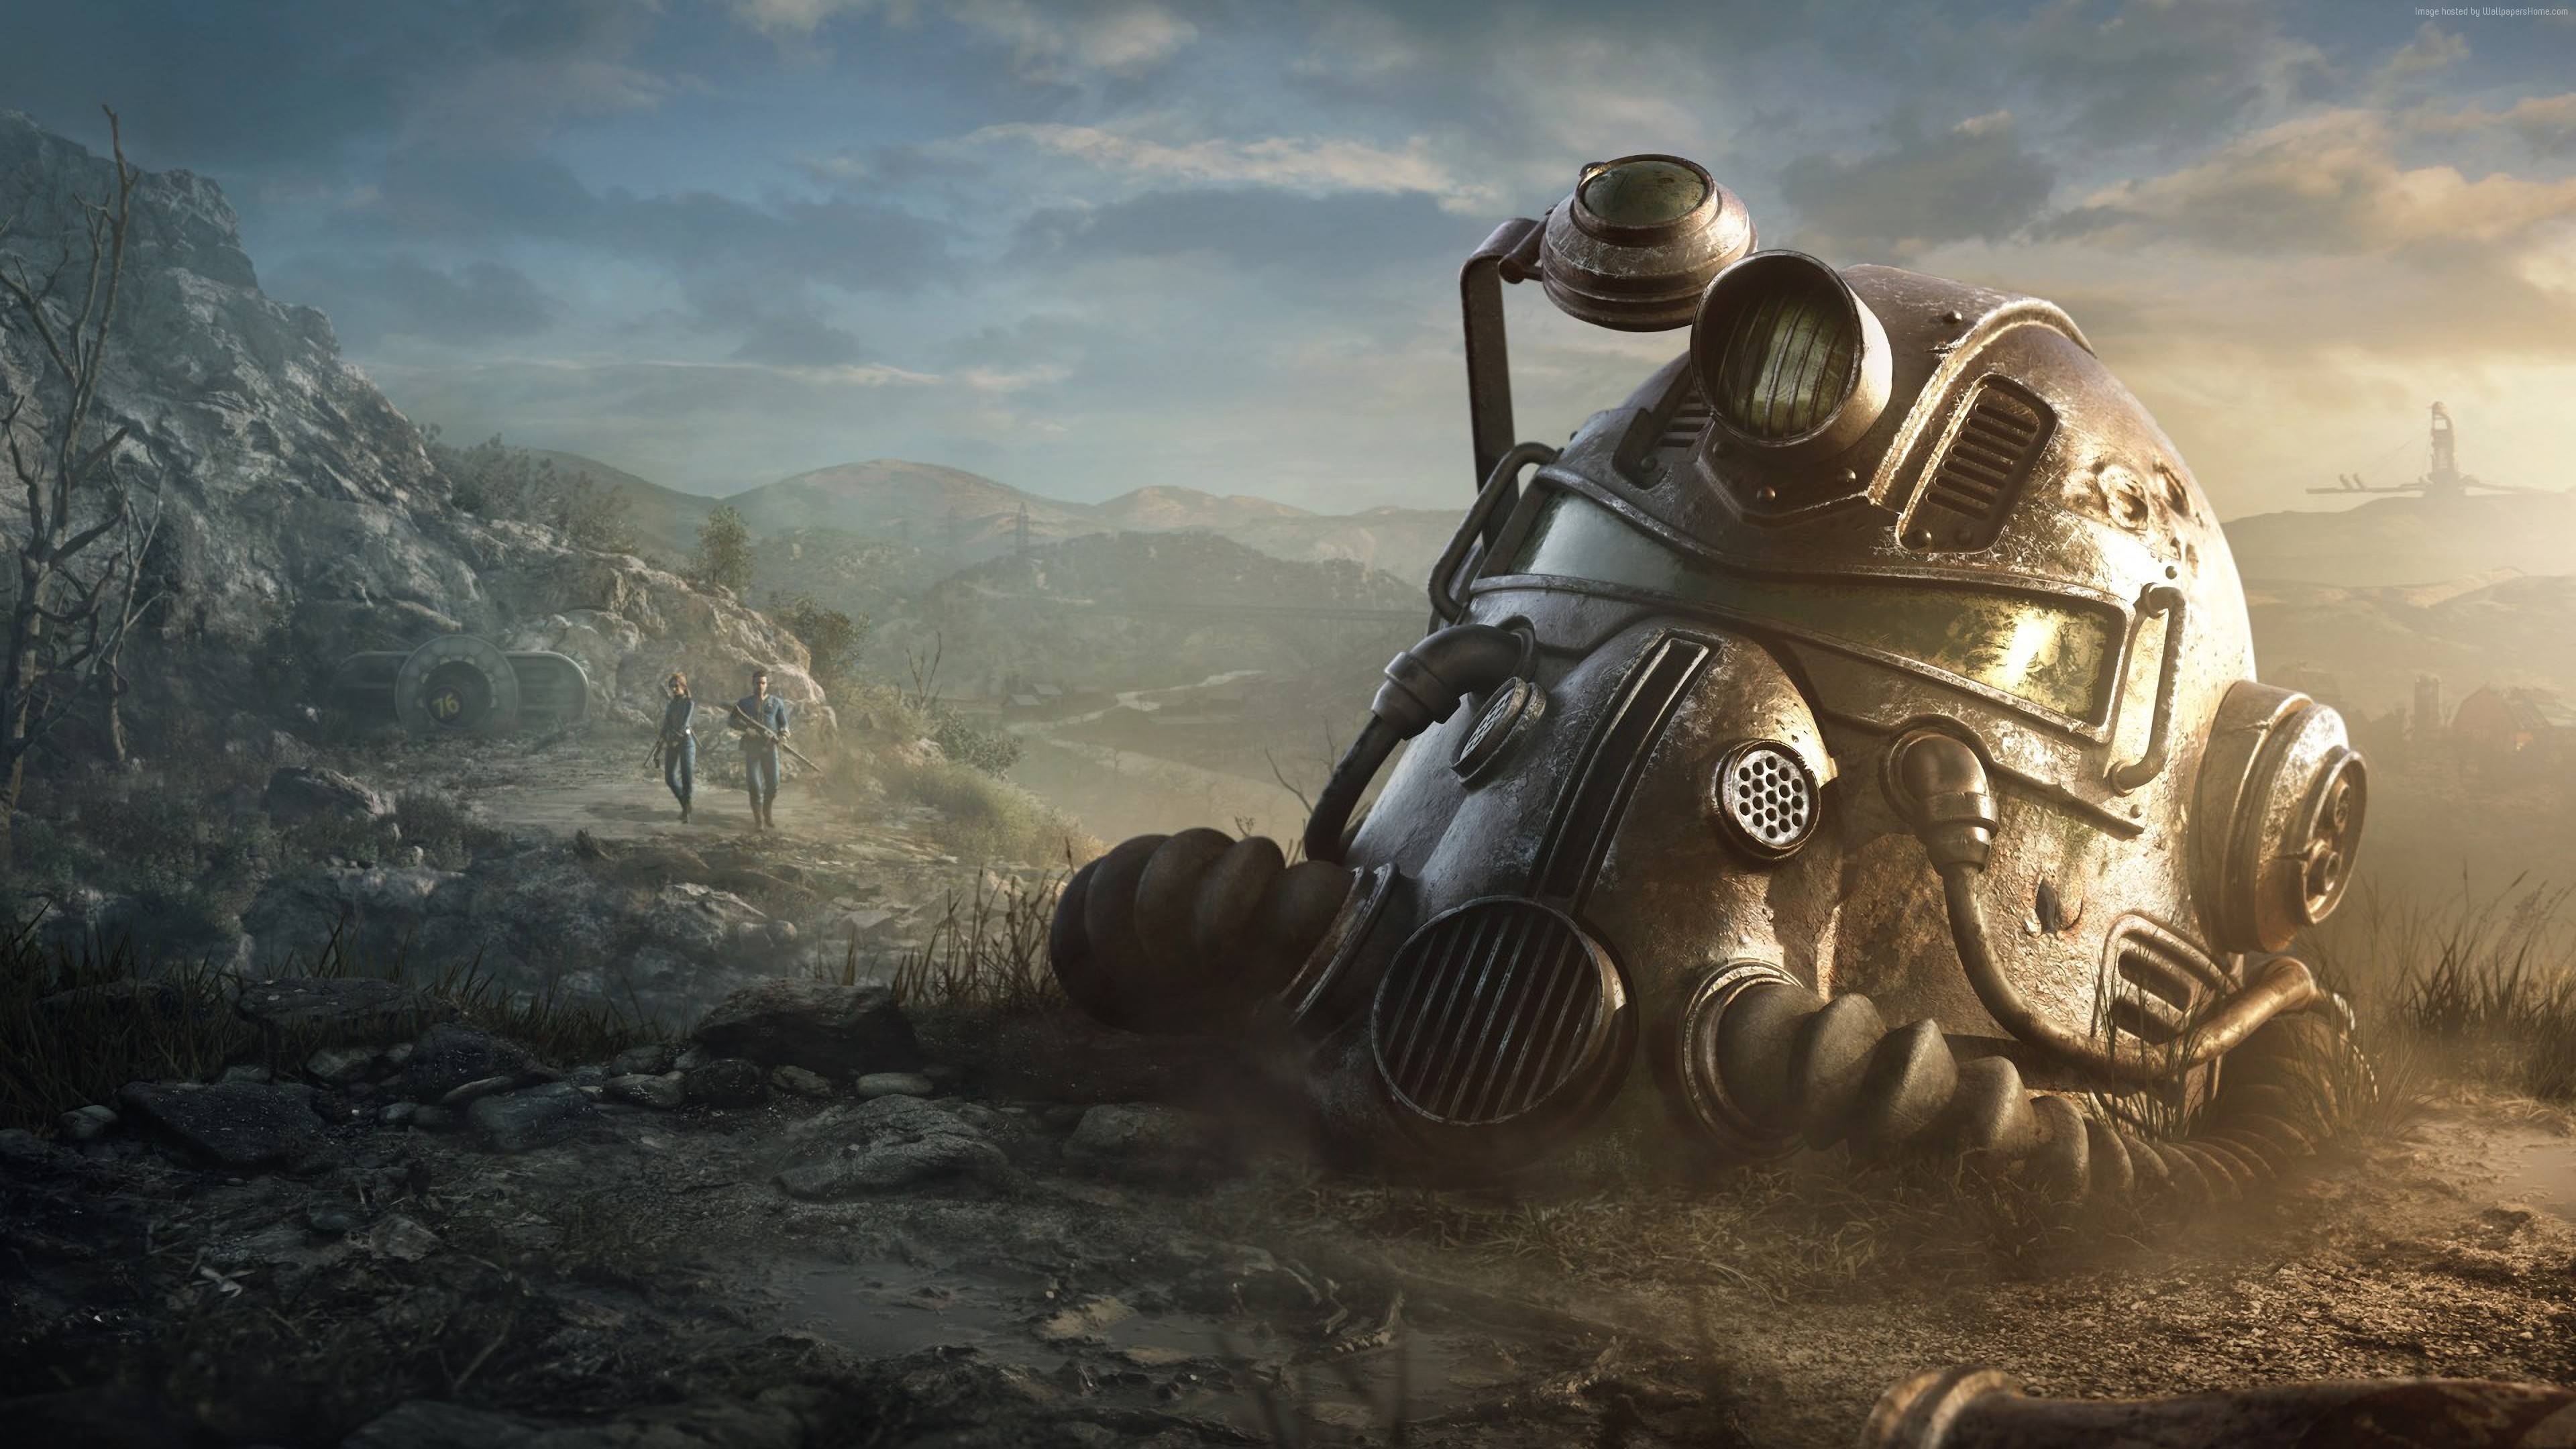 Wallpaper Fallout 76 Poster 4k Games Wallpaper Download High Resolution 4k Wallpaper